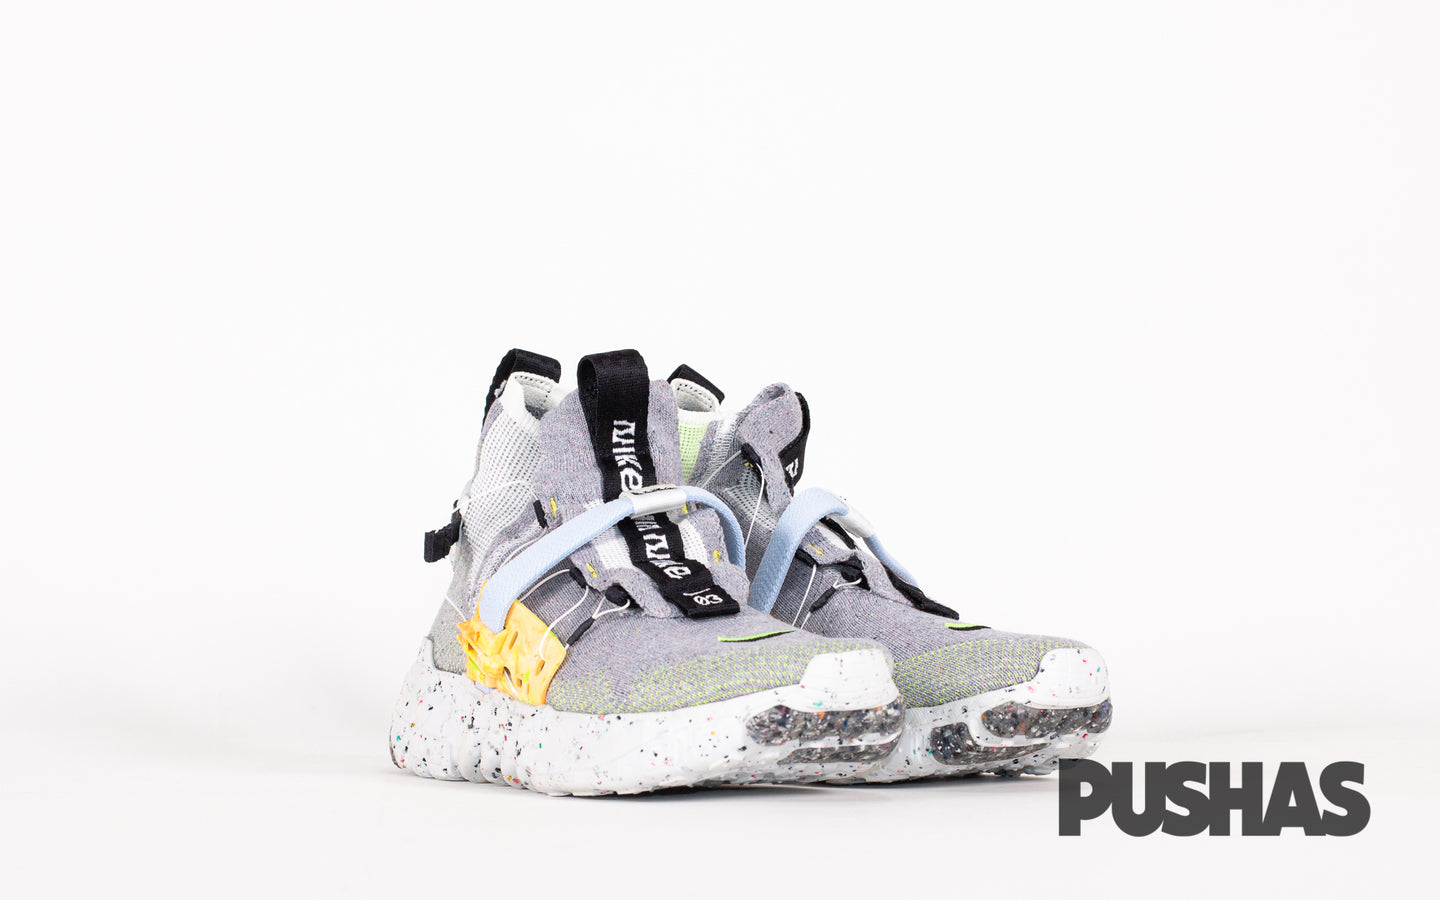 pushas-nike-Space-Hippie-03-Grey-Volt